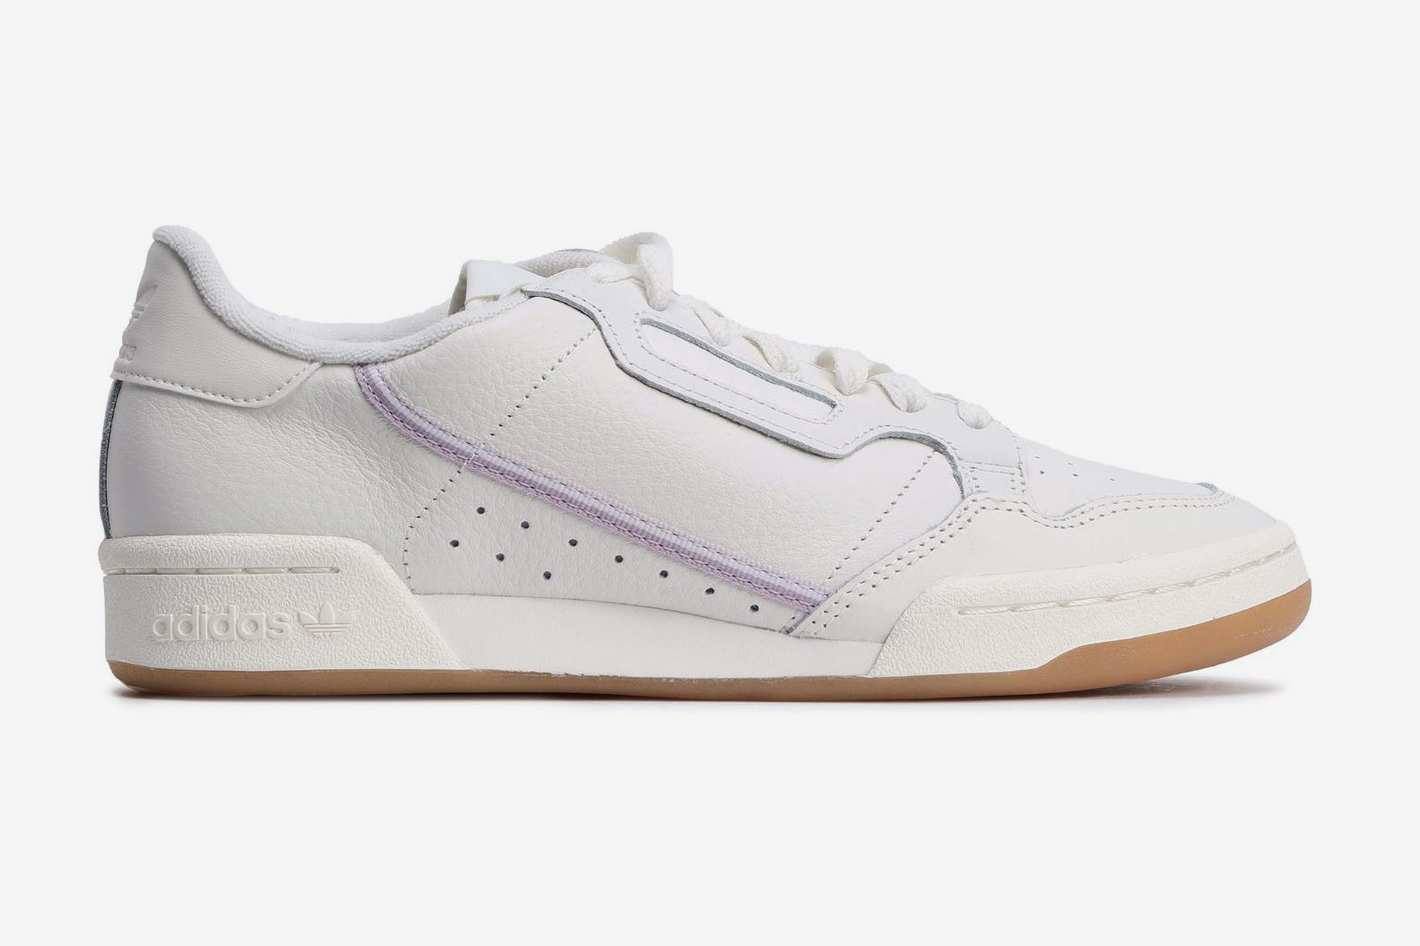 Adidas Originals Continental 80 Grosgrain-trimmed Textured-leather Sneakers